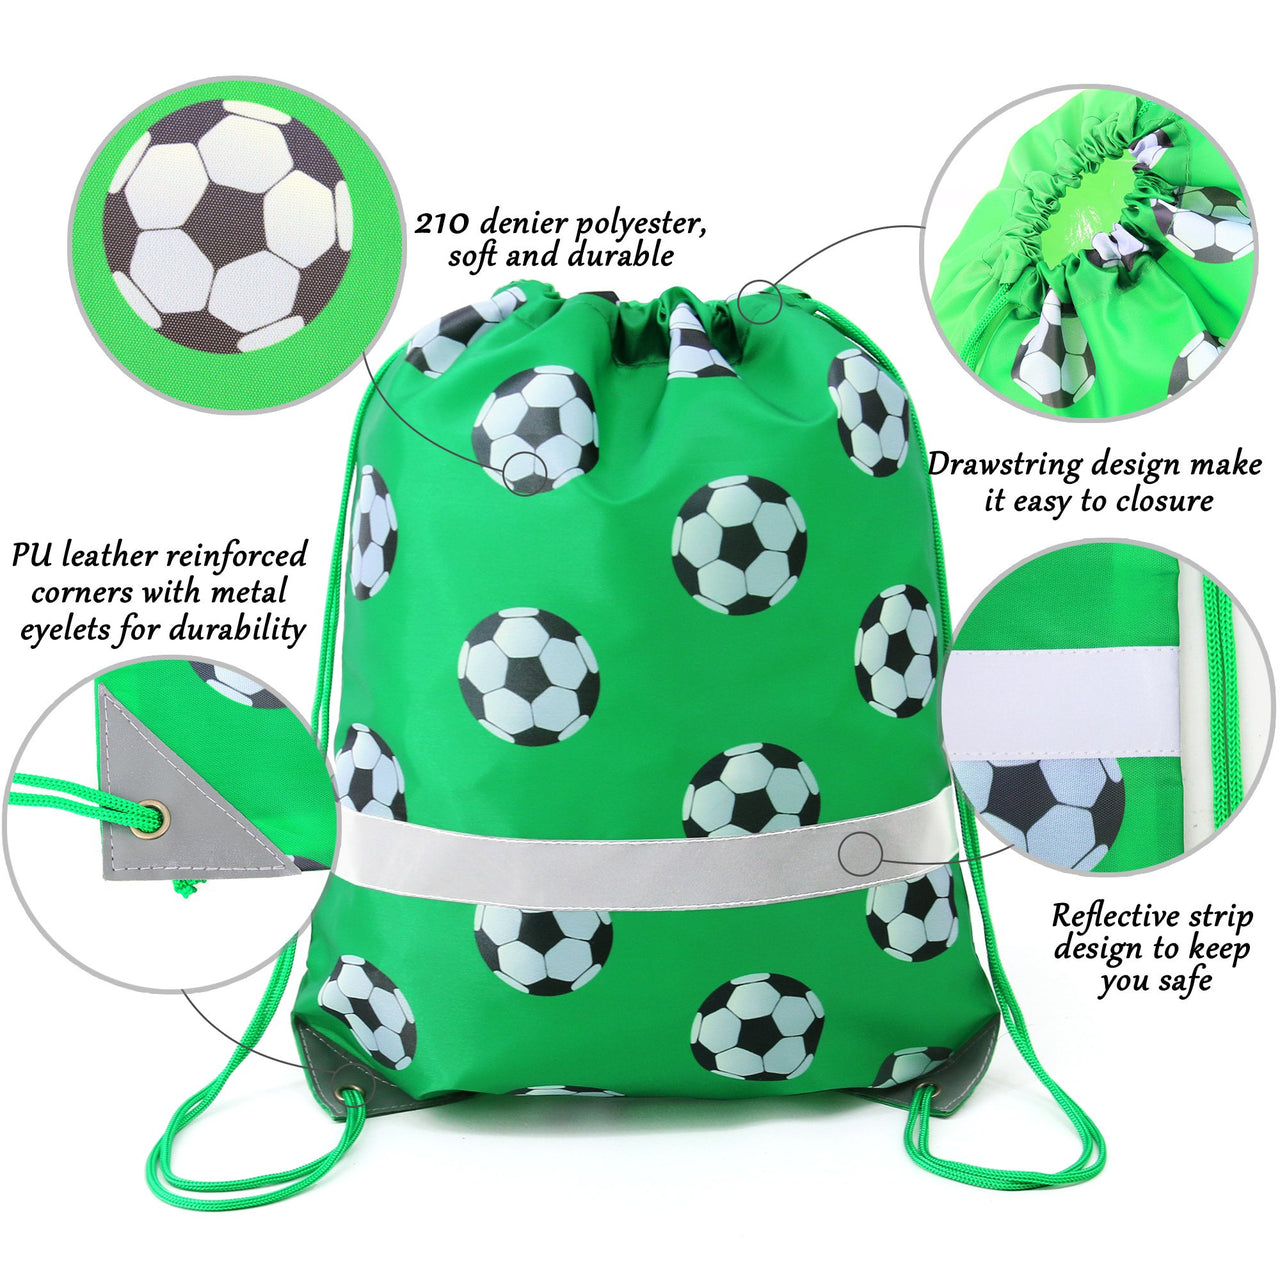 BeeGreen 10 Pack Reflective Drawstring Backpack Bags/football